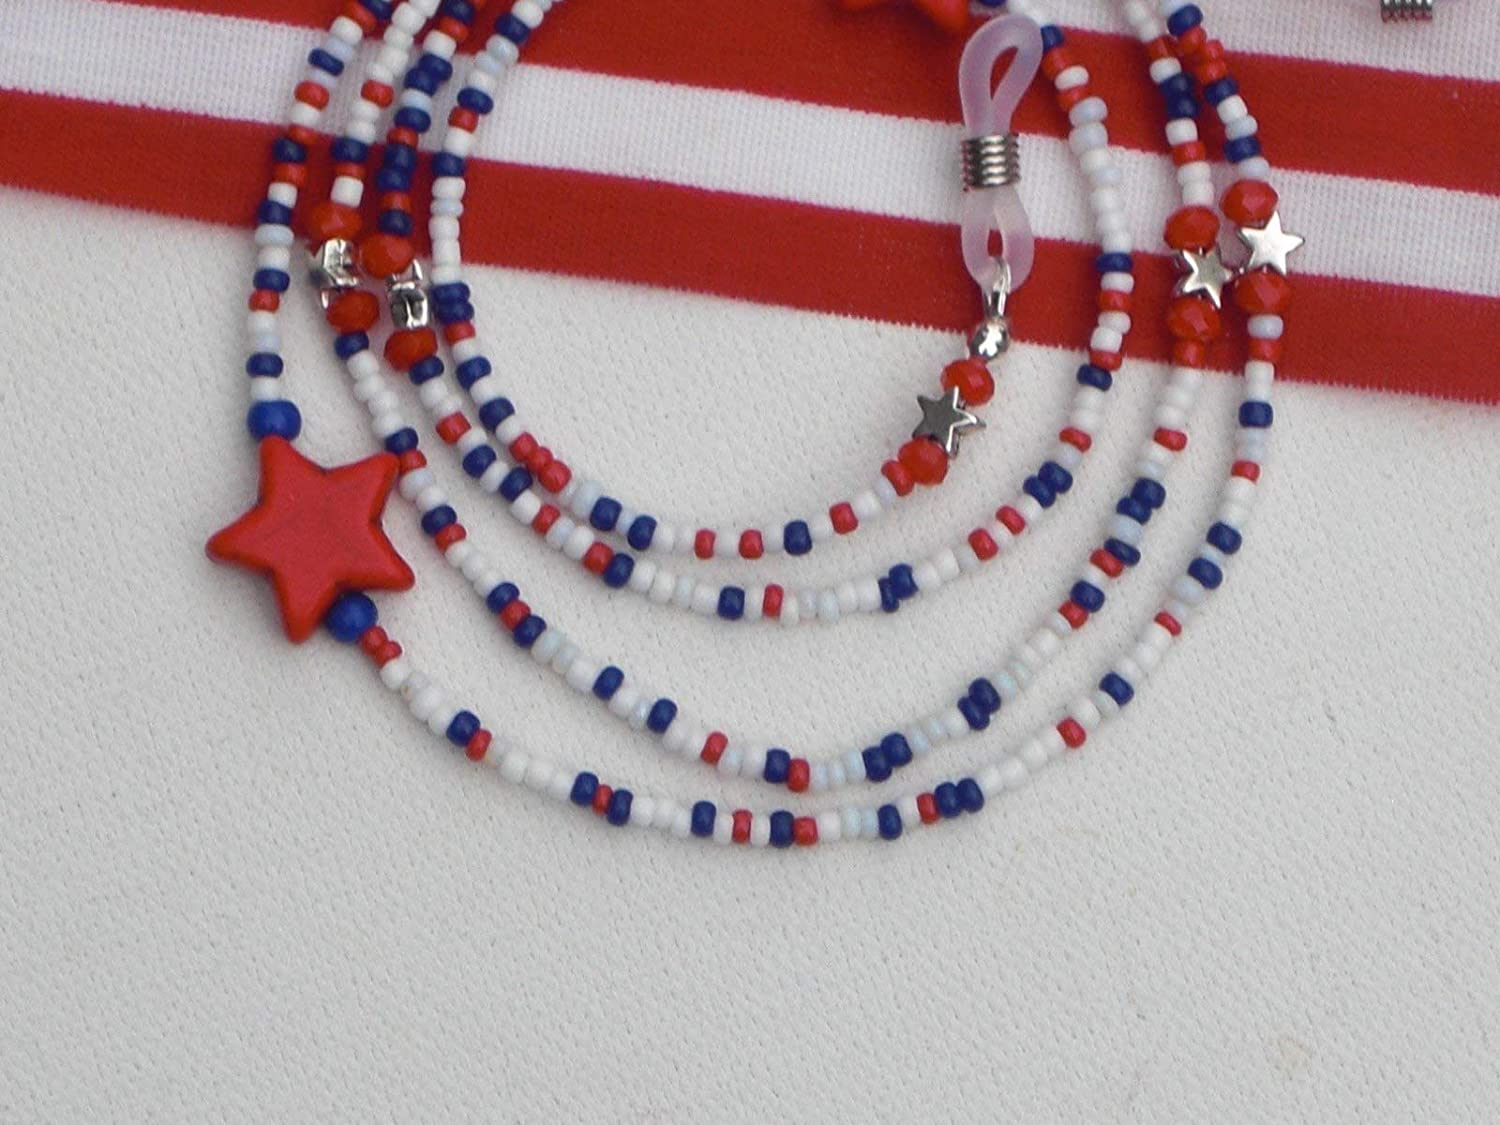 Eyeglasses sunglasses holder necklace cord. Summer Fourth of July patriotic accessories Red white and blue leather beaded eyeglass chain